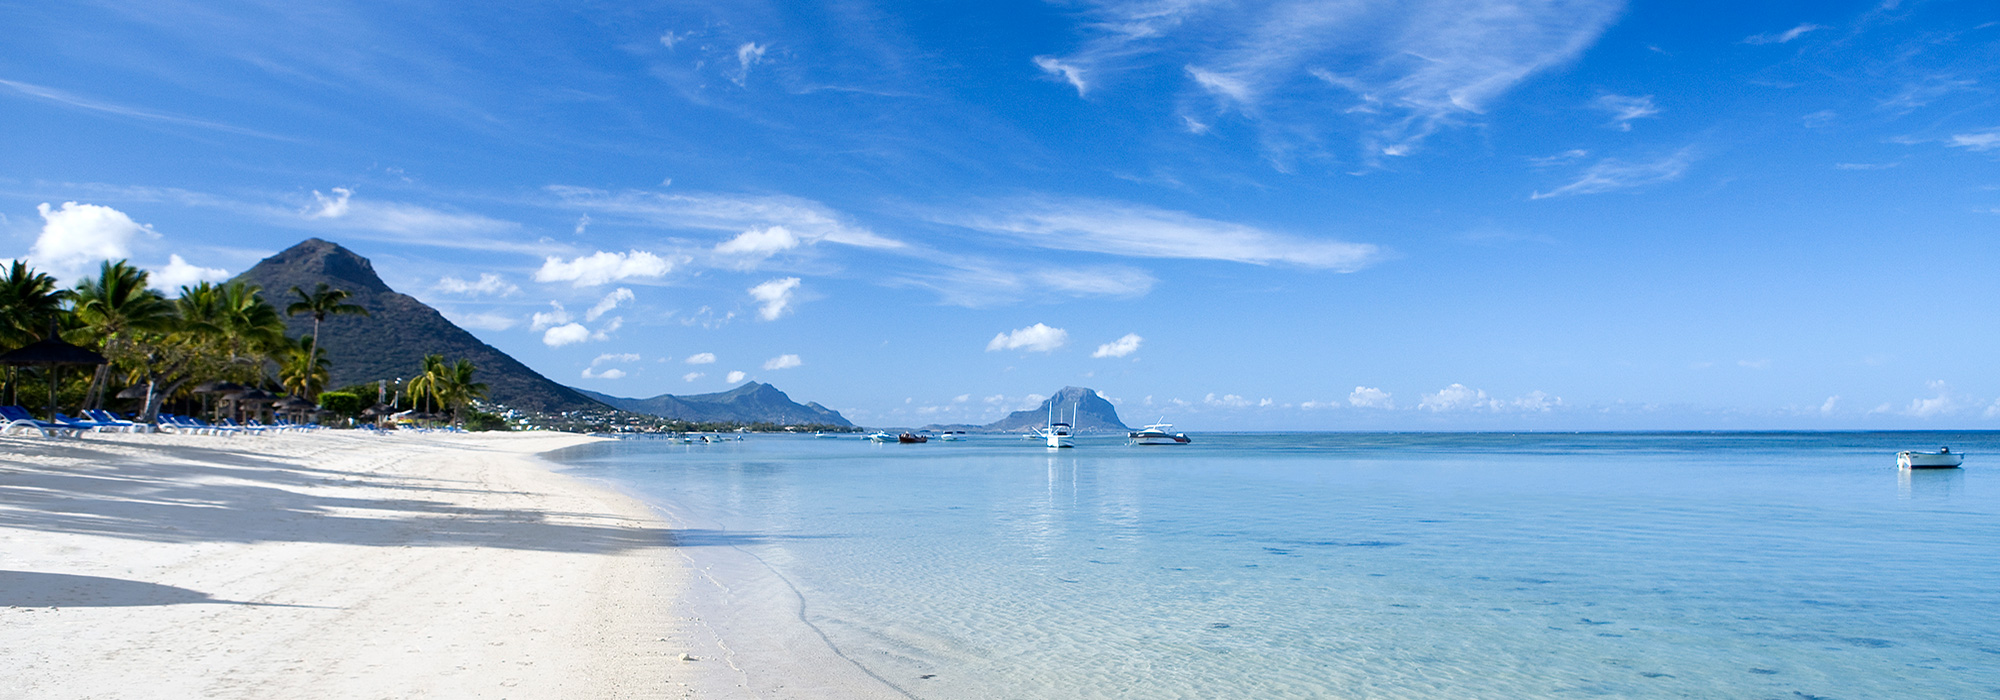 Tranquility and Serenity in Mauritius